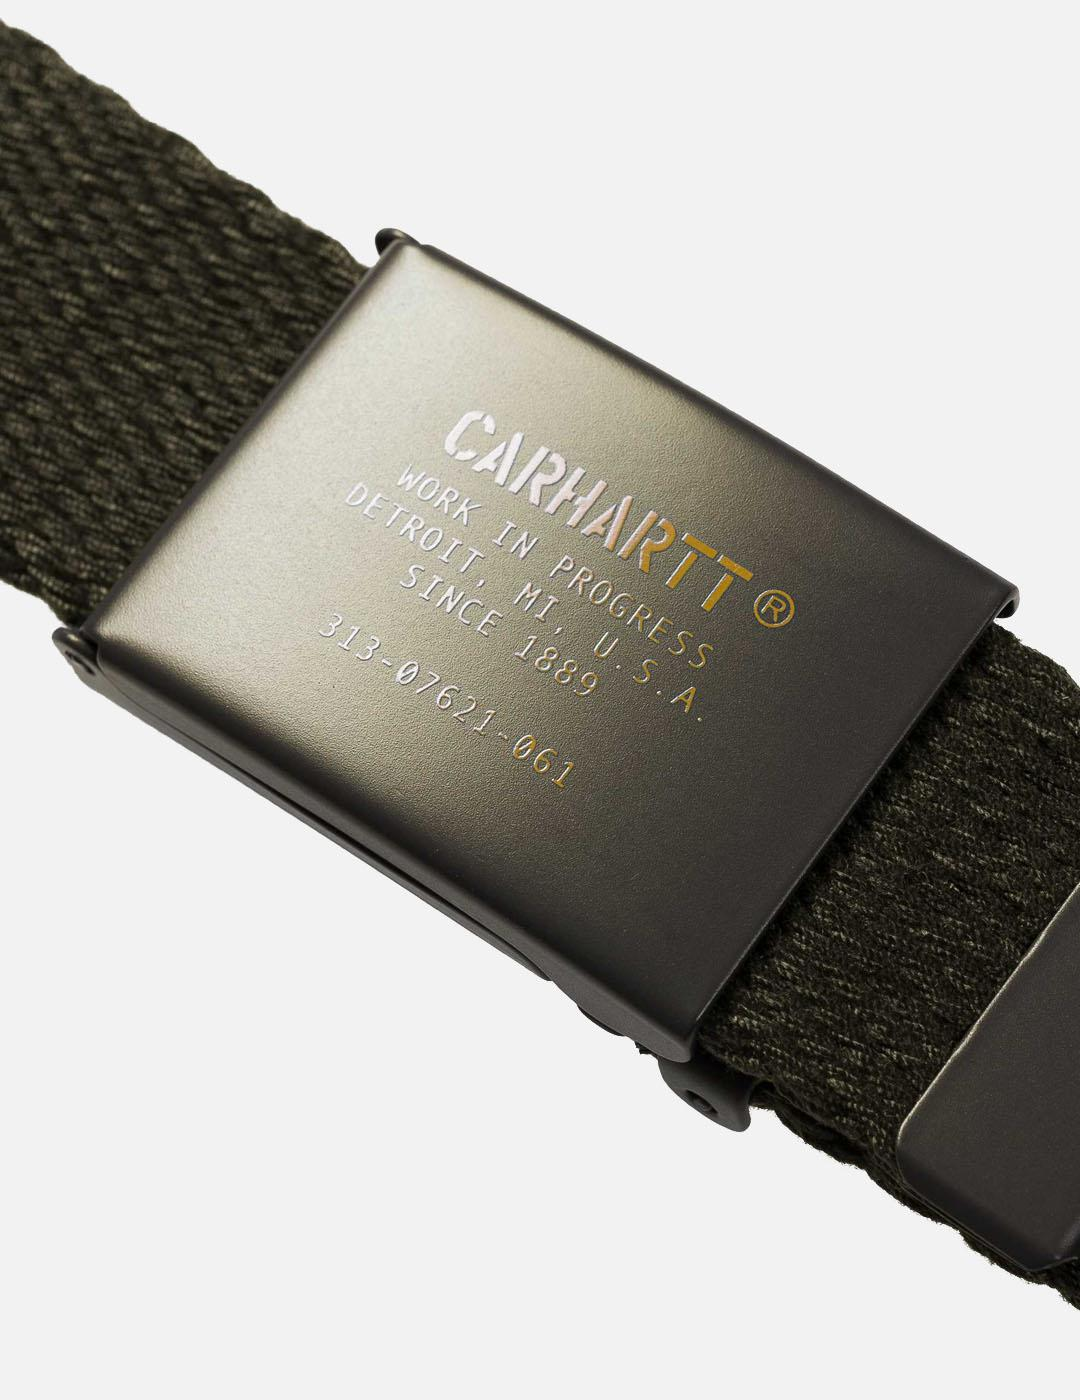 Cinturón Carhartt MILITARY PRINTED BELT - Cypress